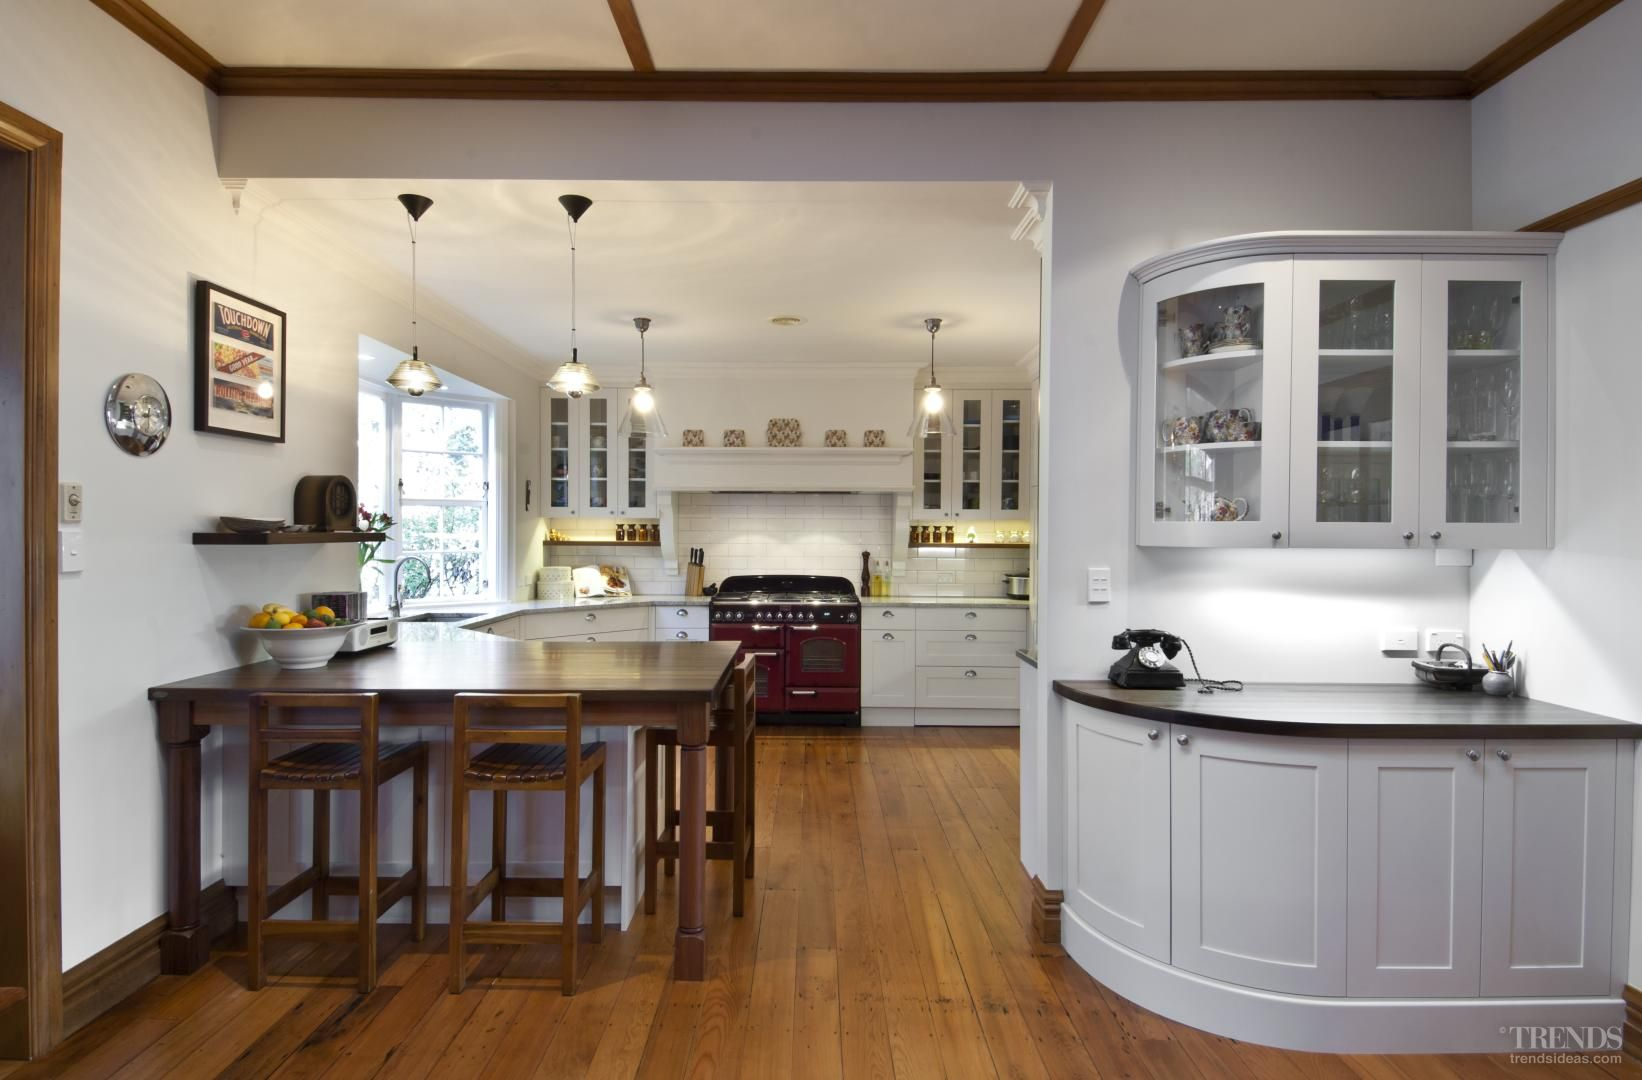 1930S Kitchen Design Simple In Touch With Tradition  1930S Character Bungalow Remodel. Review